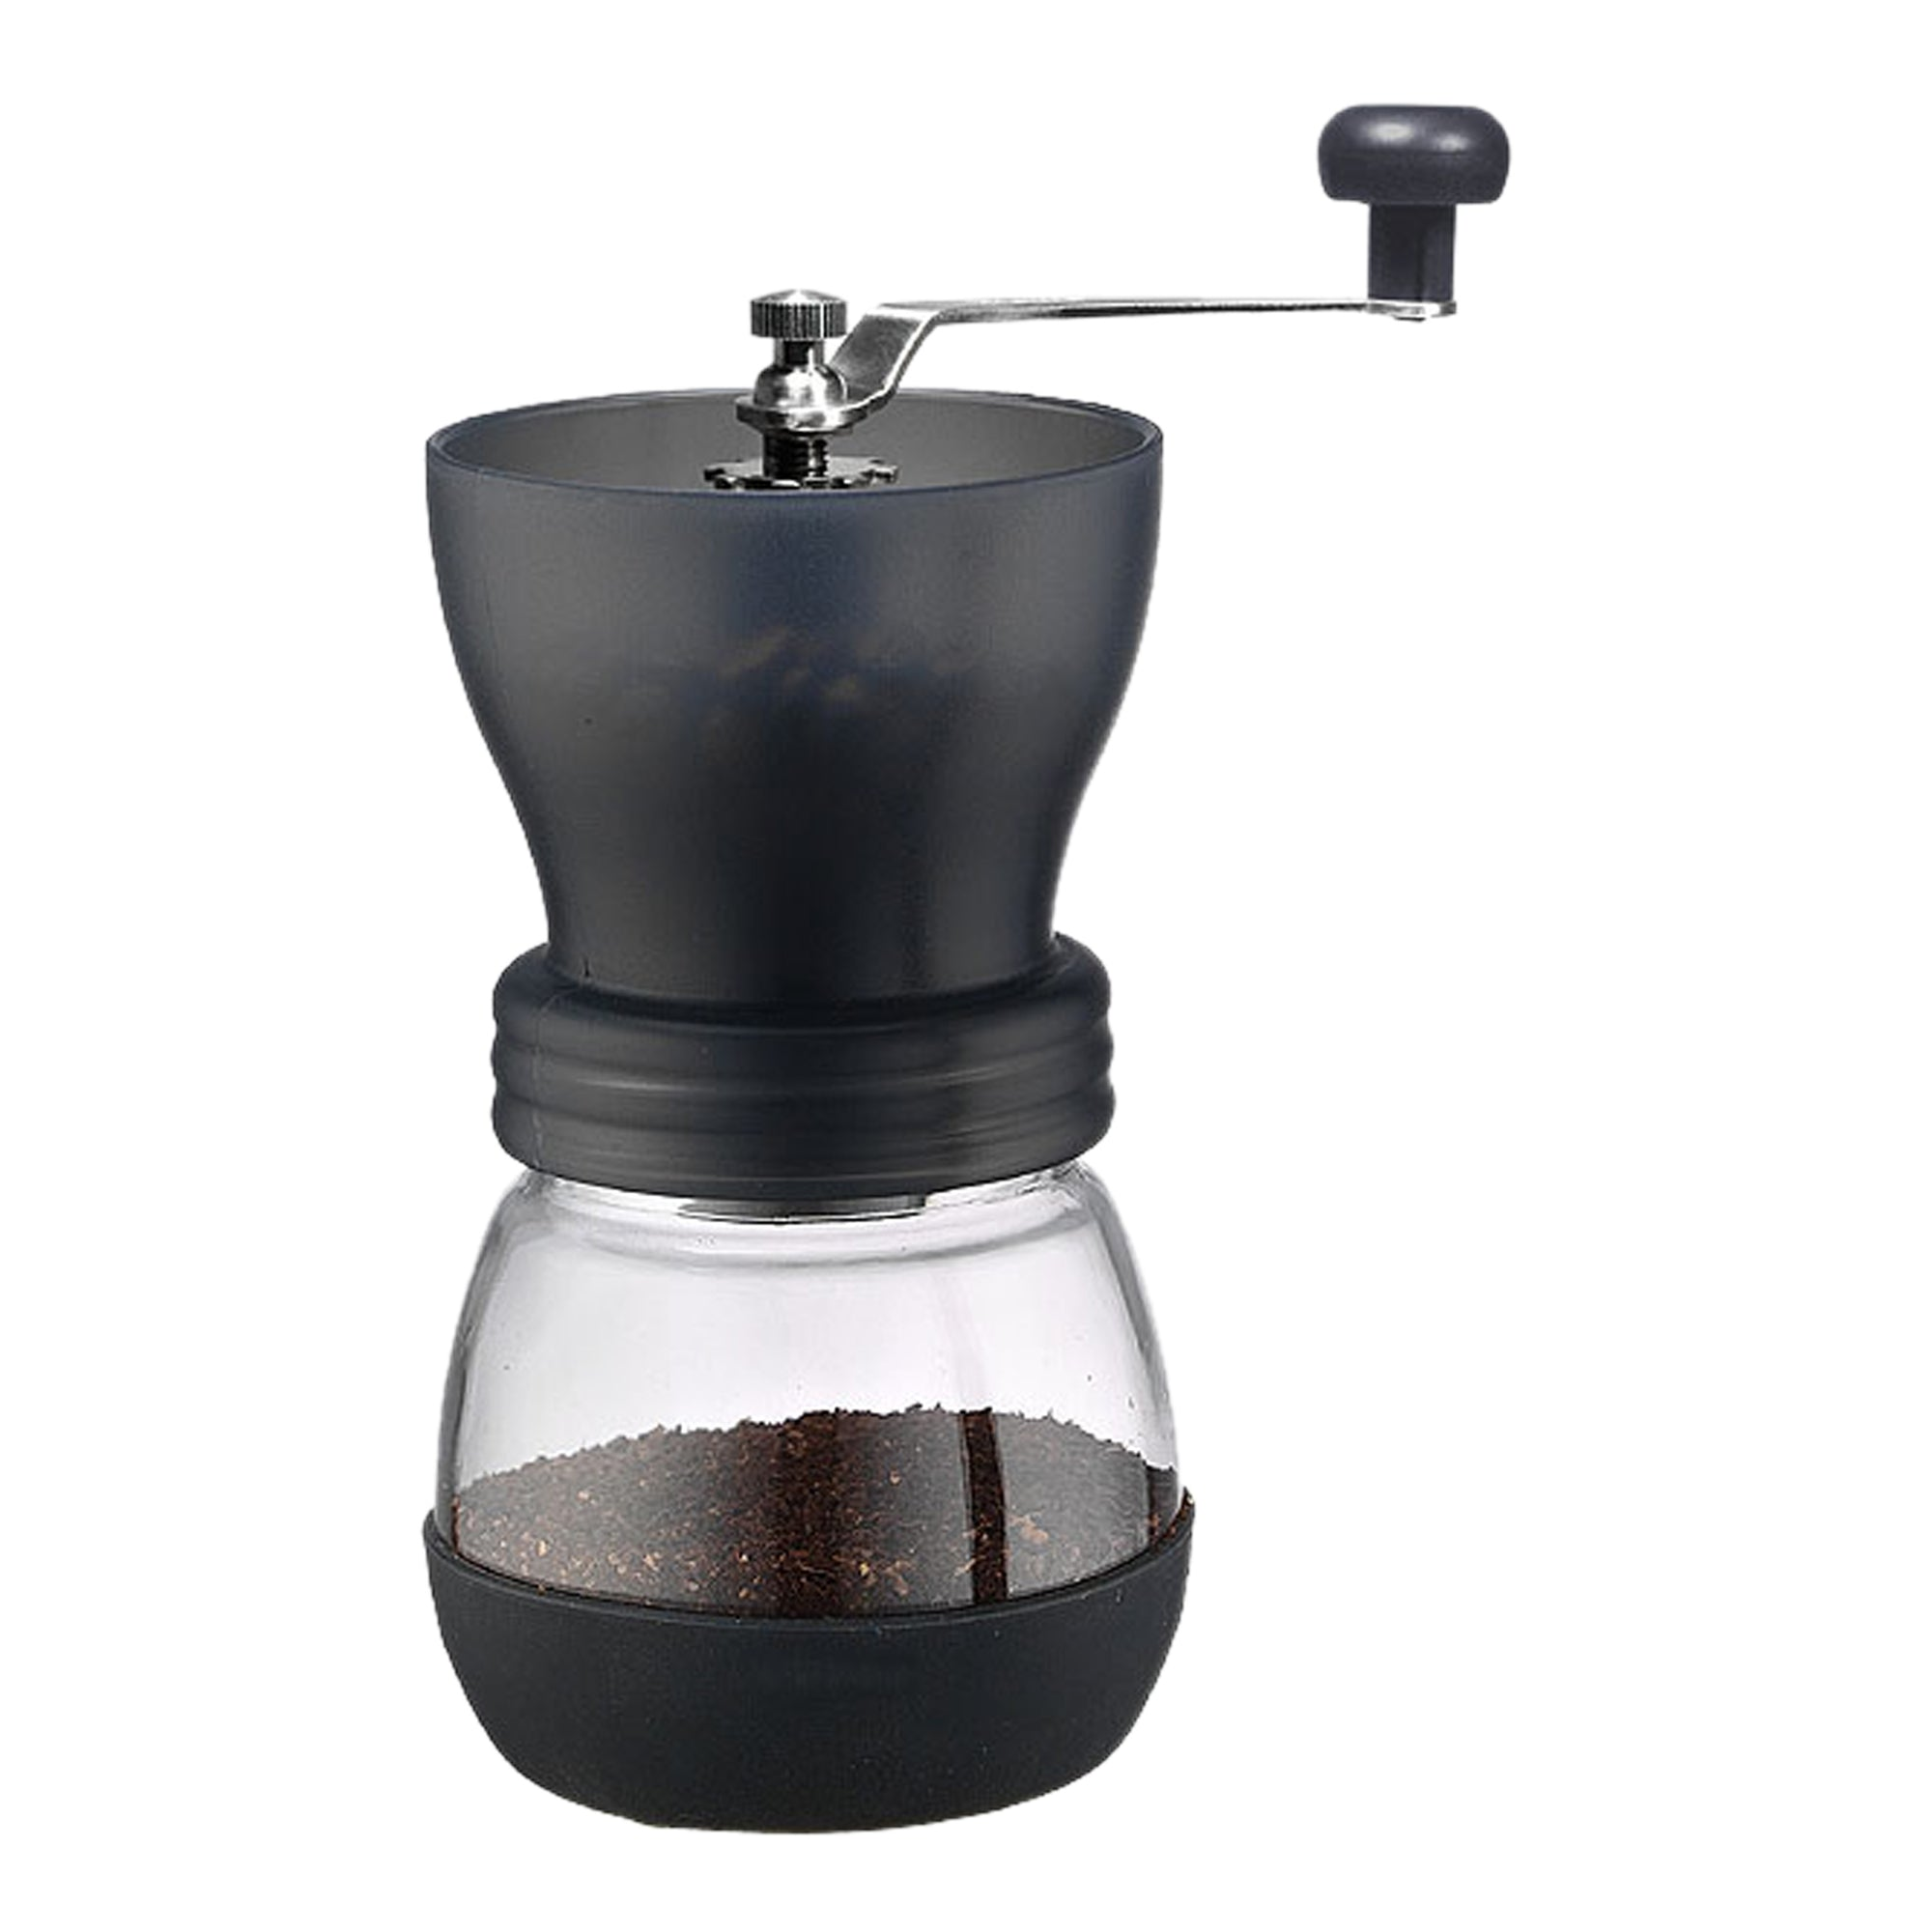 Grinder Fat black - Tiamo - Espresso Gear